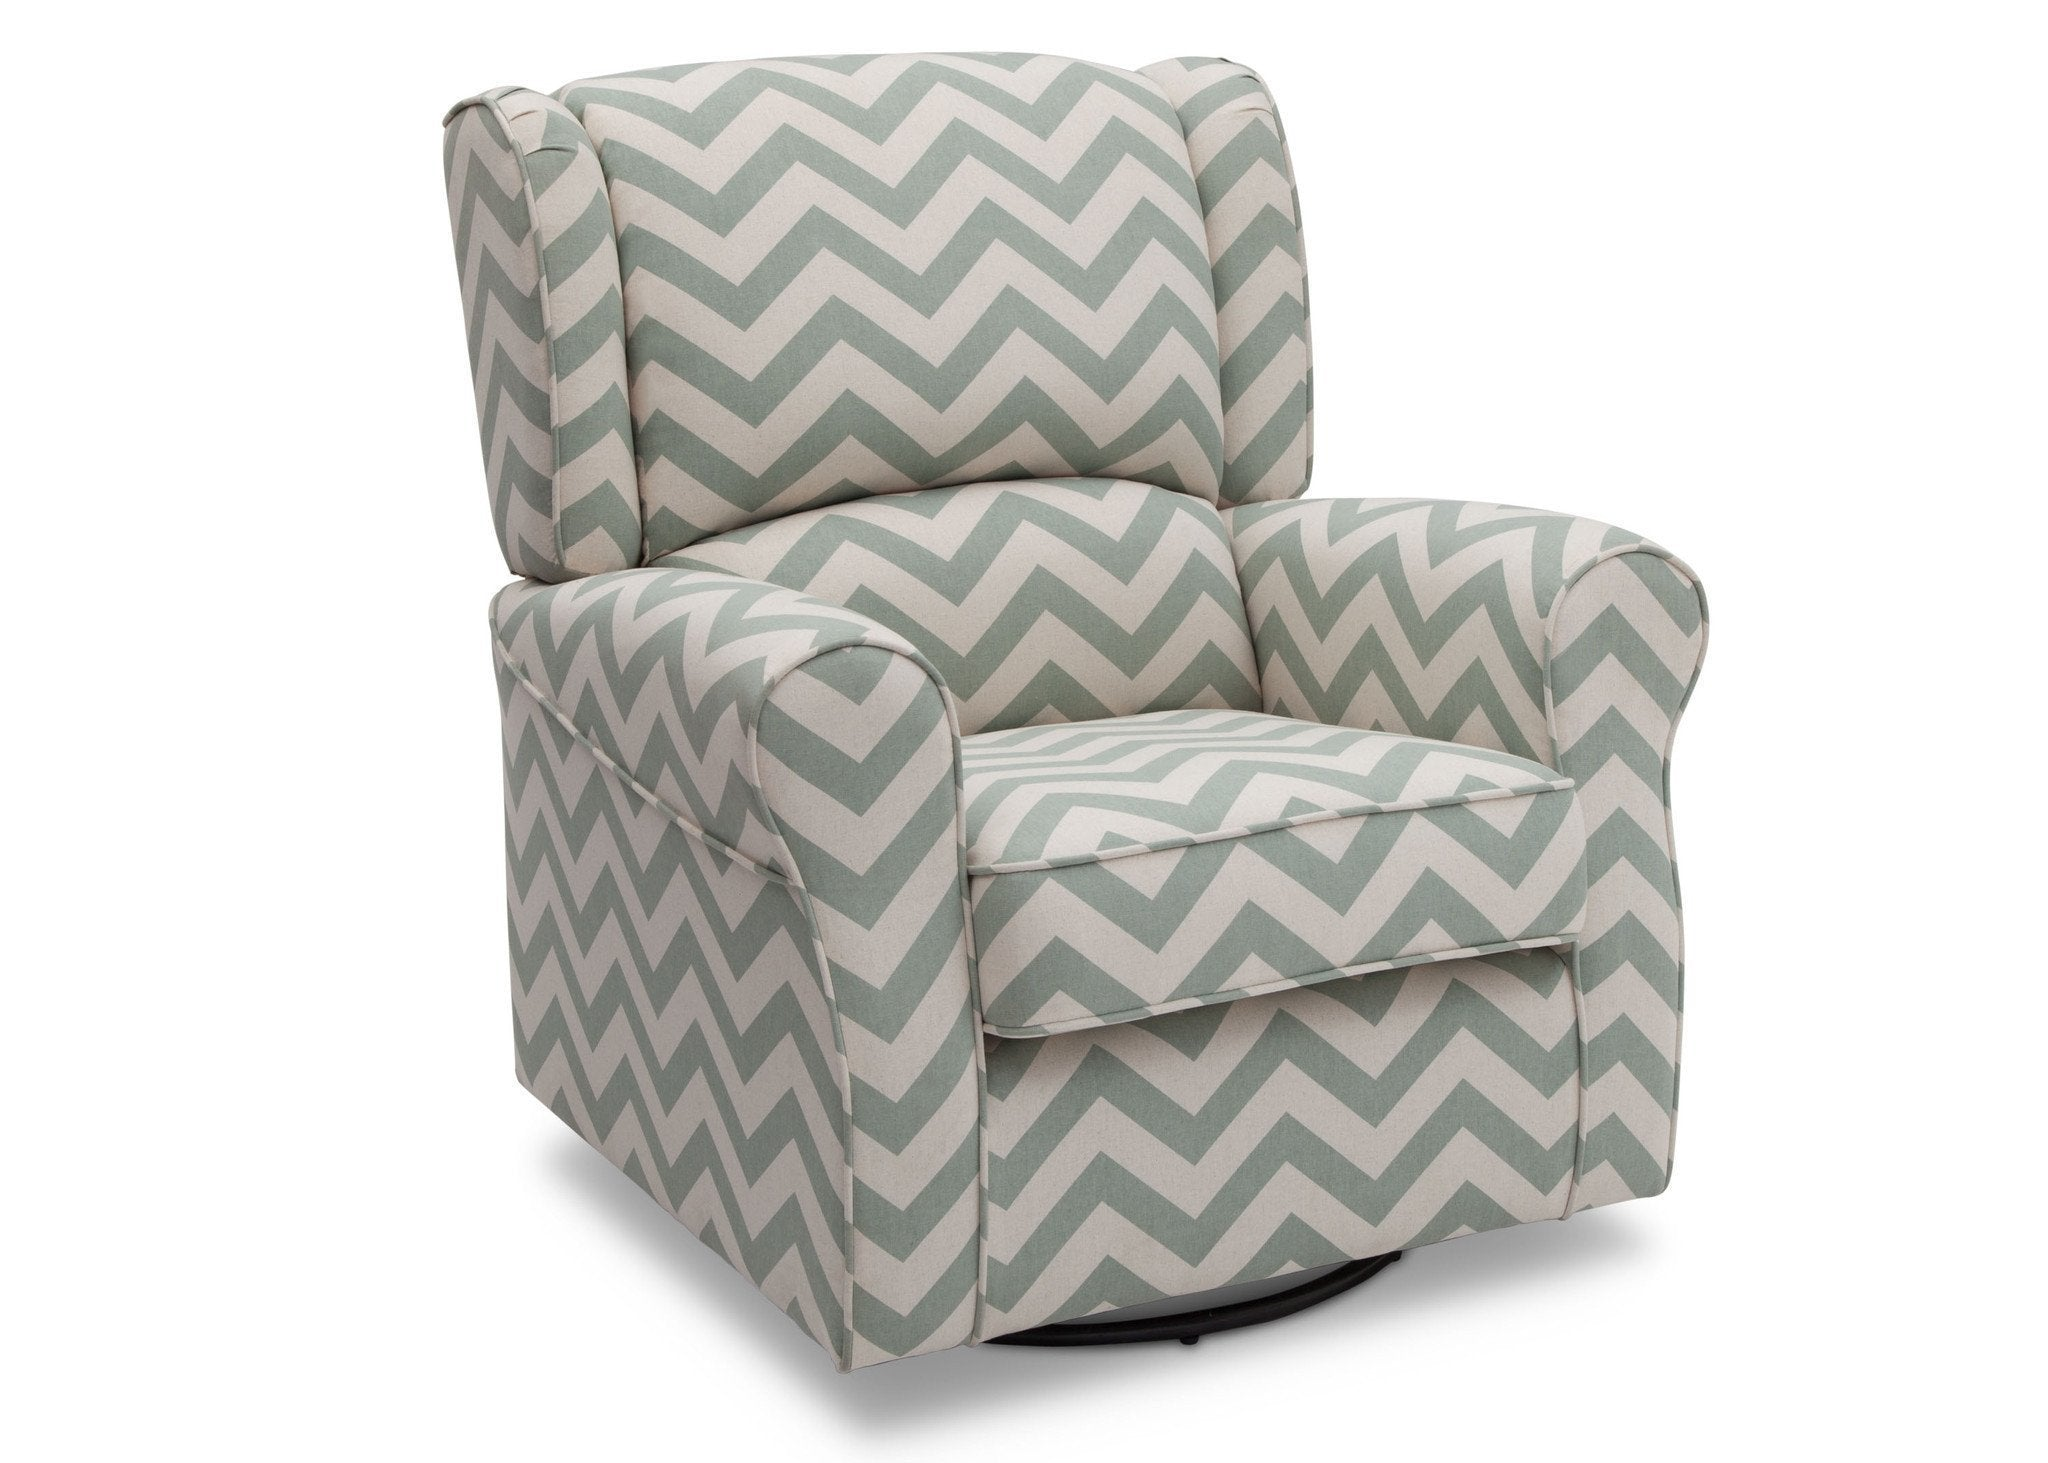 Delta Children Morgan Sage Chevron (316) Glider Right View b1b